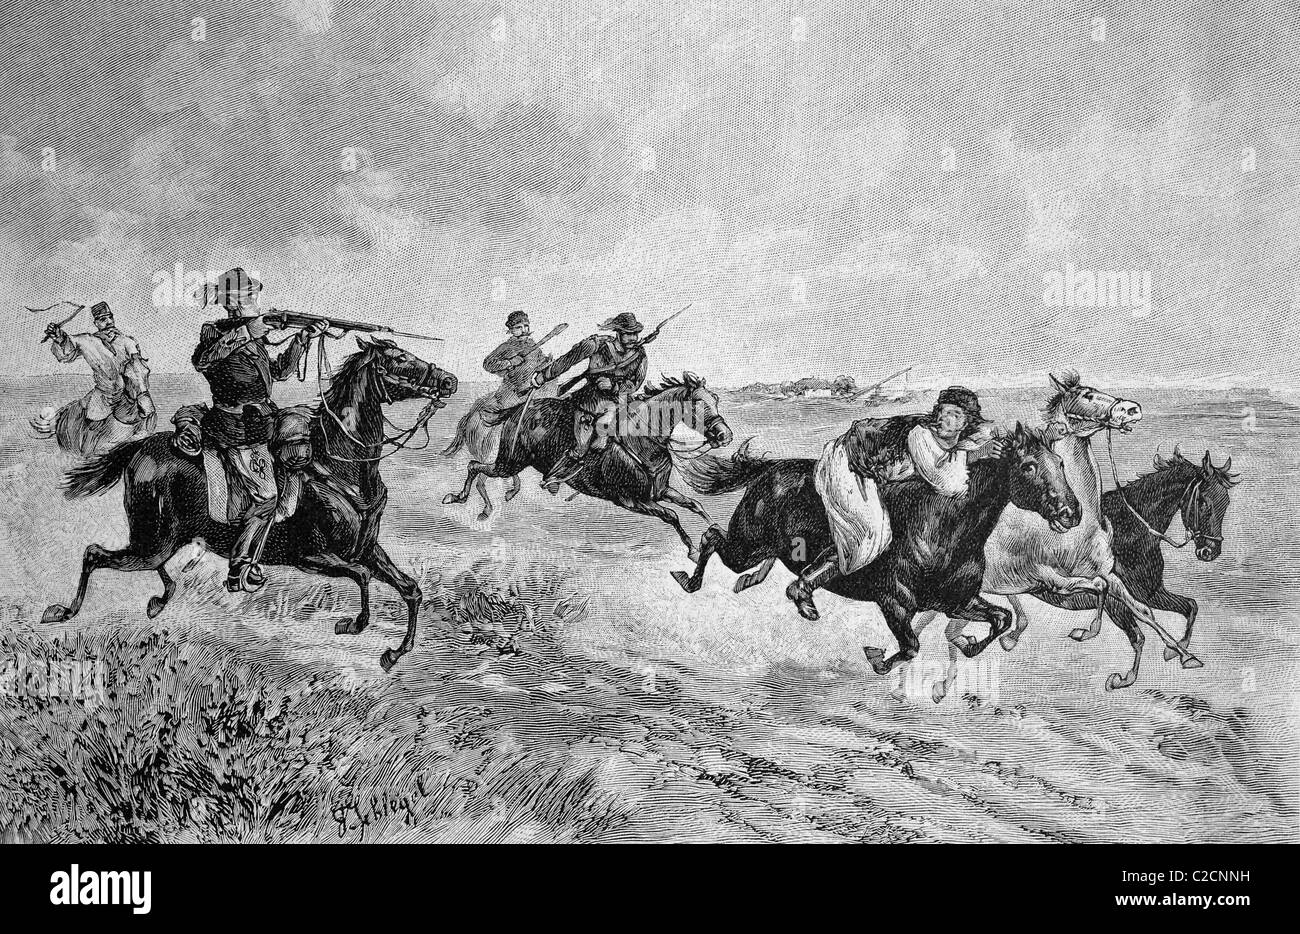 Pursuit of a horse thief in Hungary, historical illustration circa 1893 - Stock Image